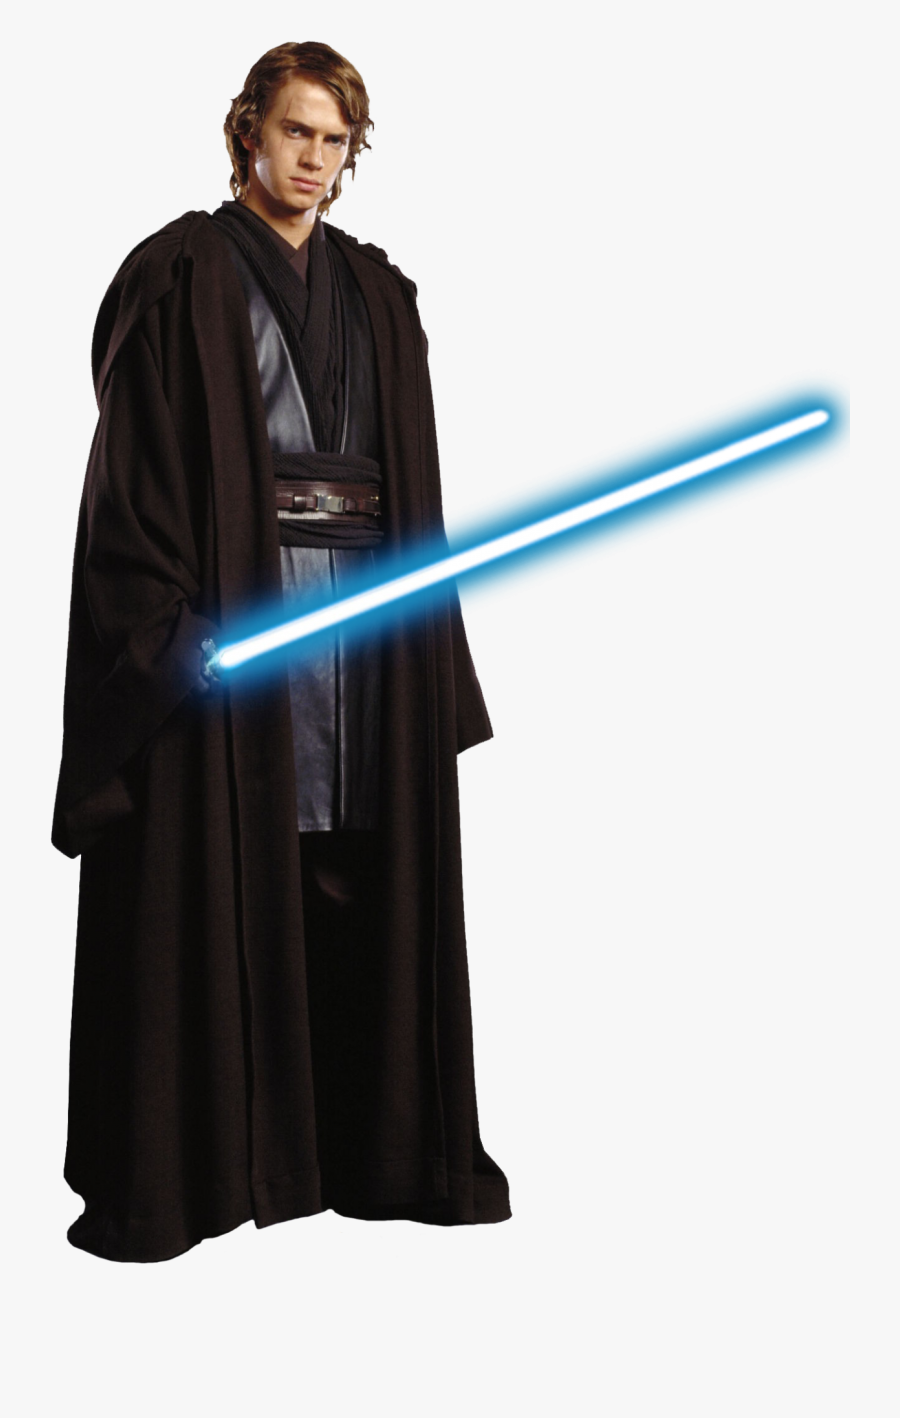 Anakin Skywalker Png.